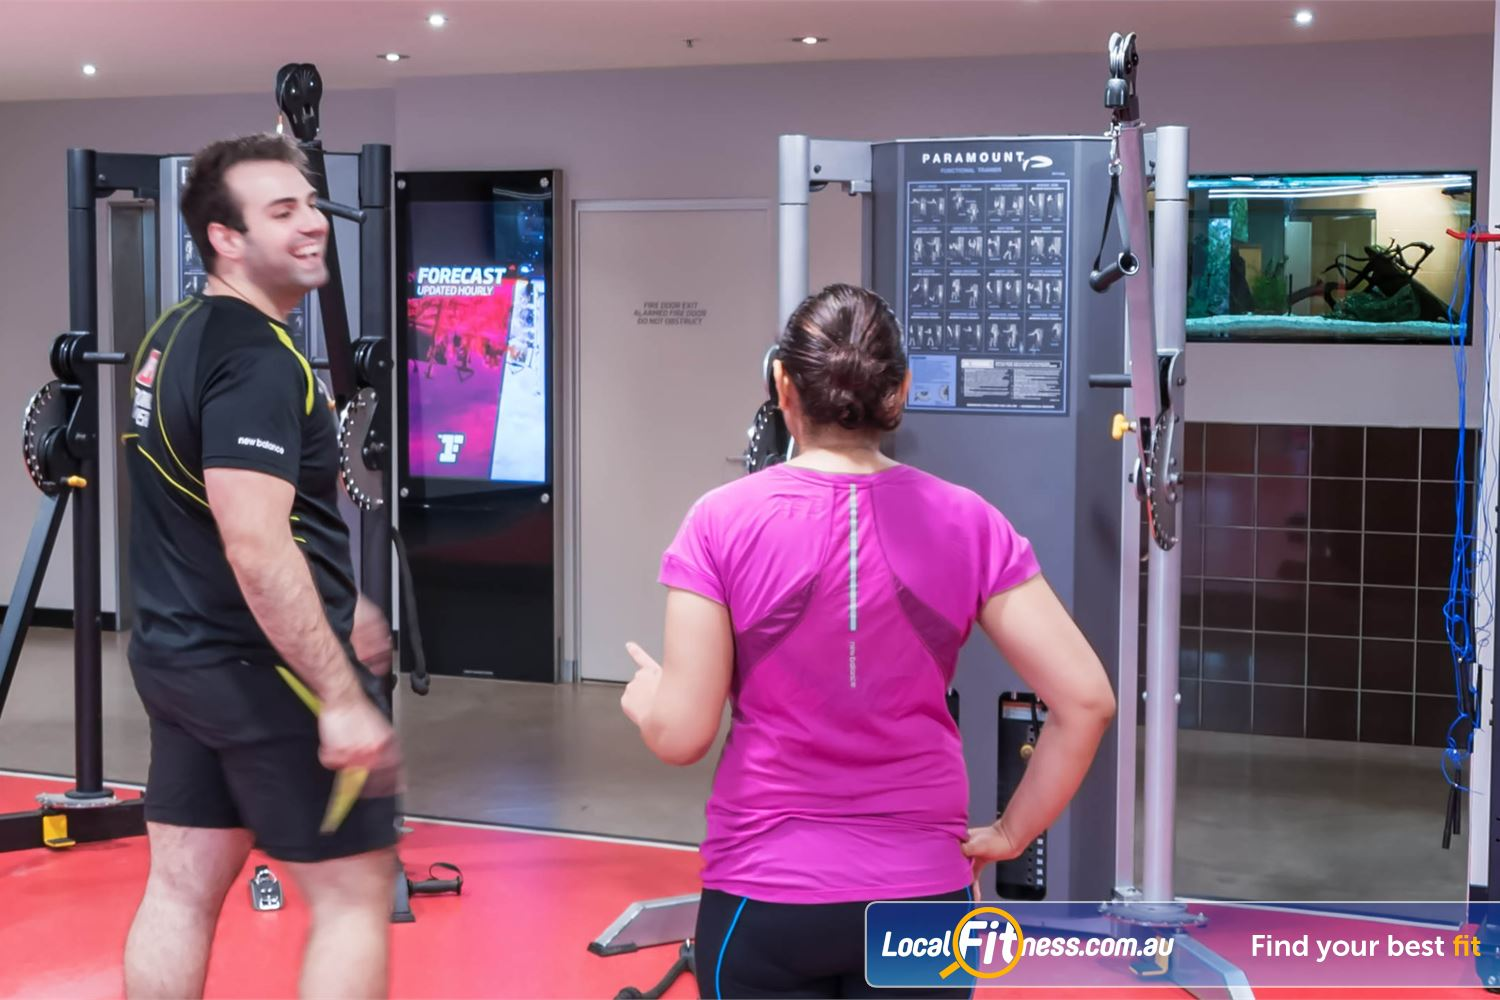 Fitness First Elizabeth Plaza Near Waverton Get the right advice about training from our North Sydney personal trainers.